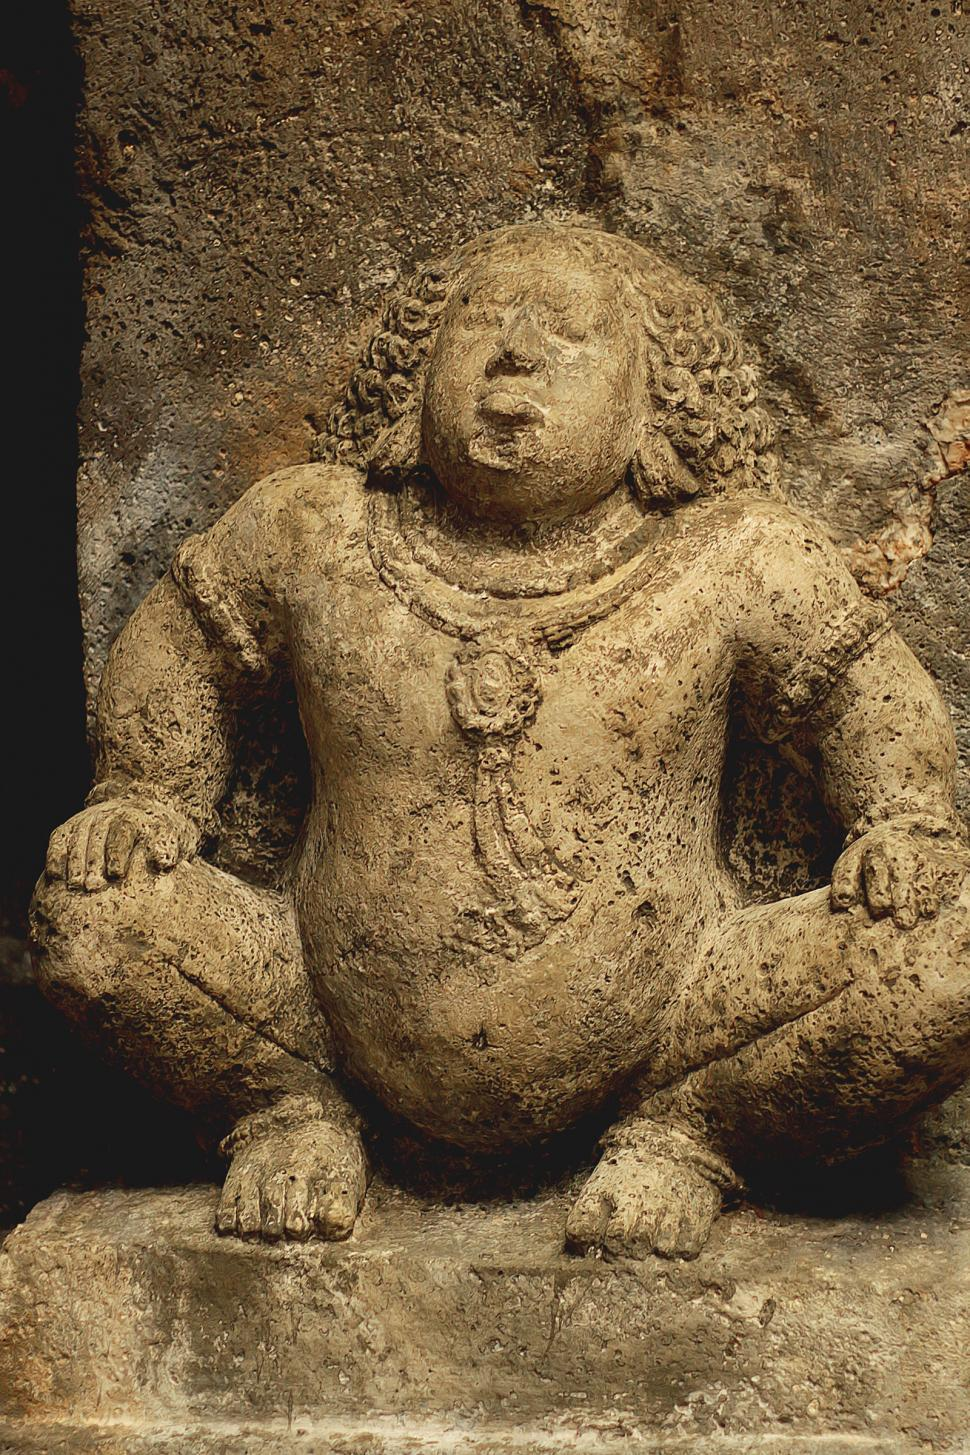 Download Free Stock HD Photo of Stone Carved Ancient Buddhist Sculpture Ancien Stone Sculpture from Ajanta Caves Online